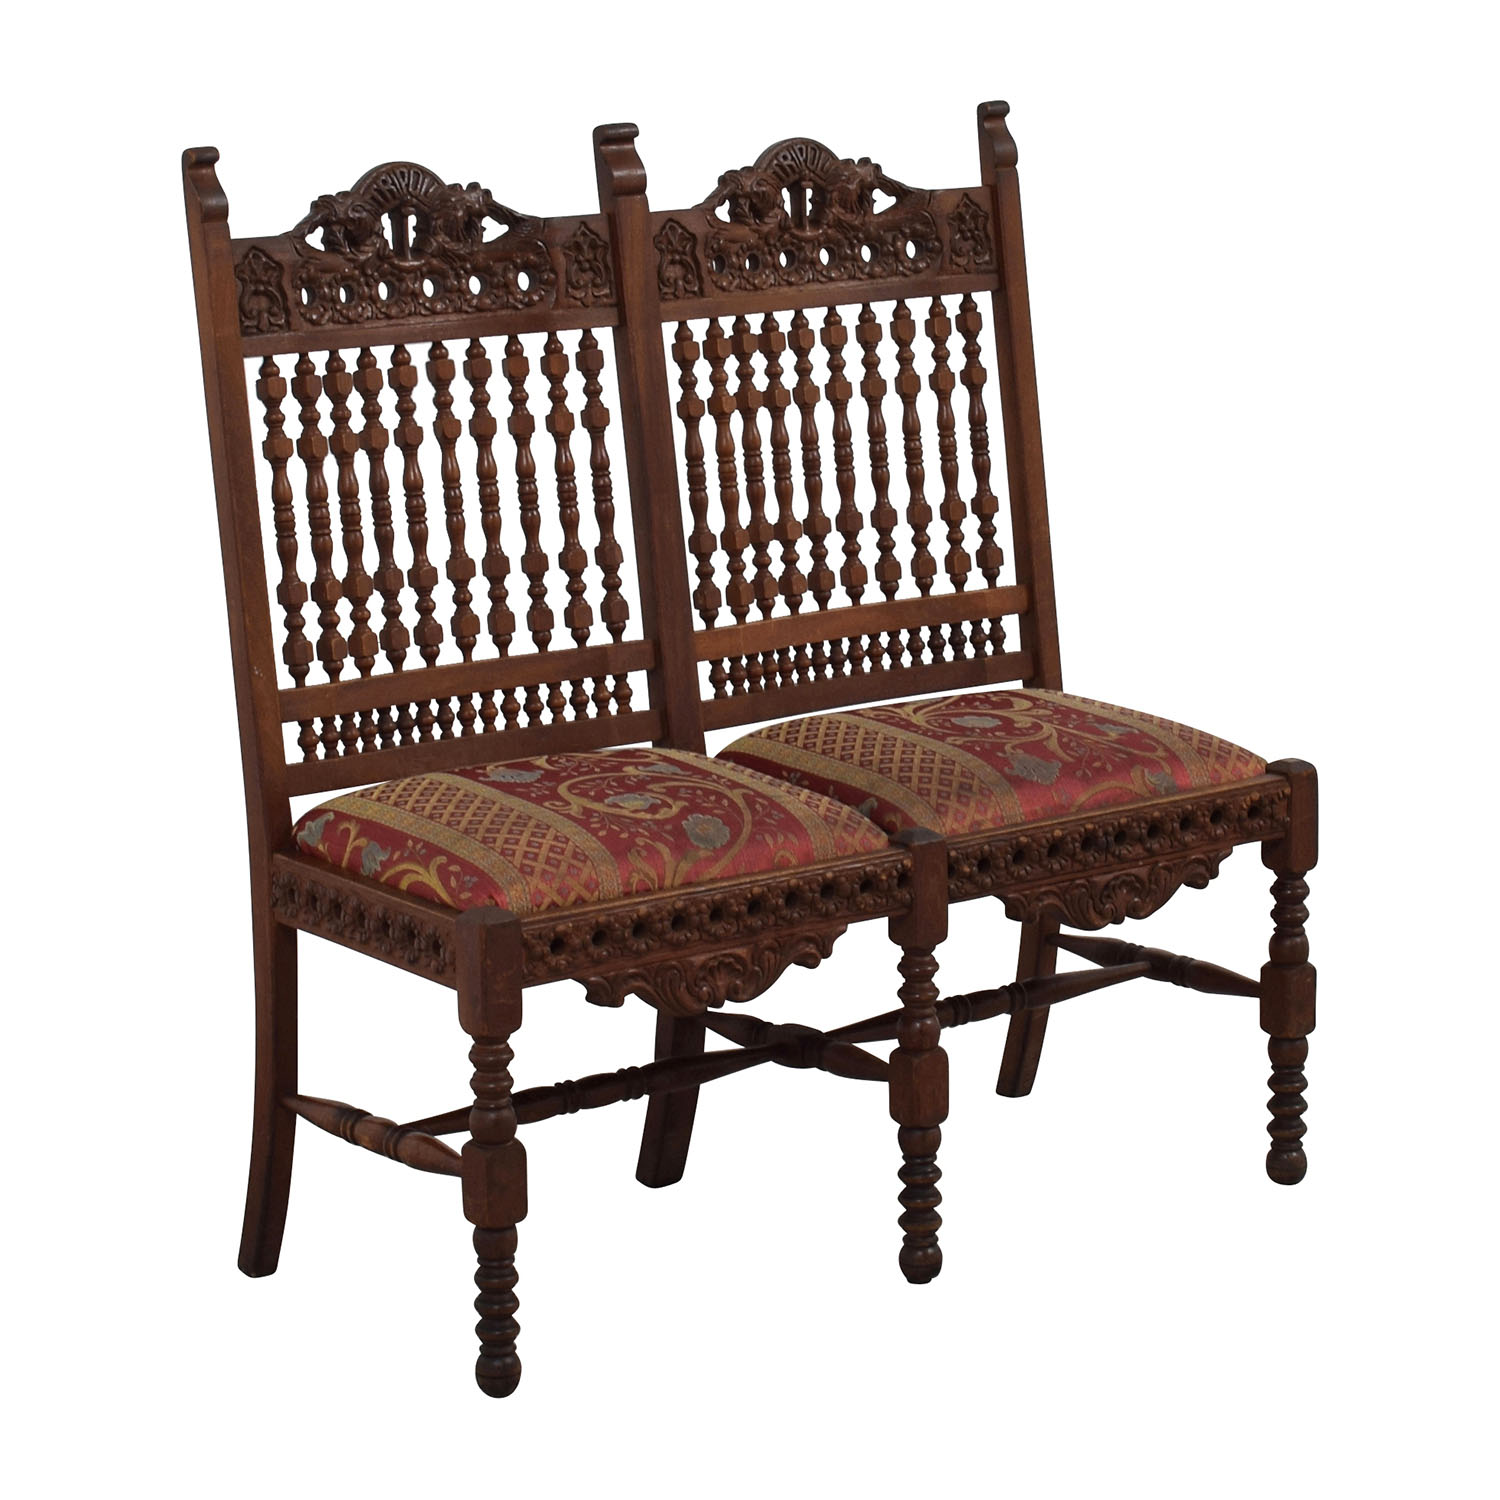 Hand Chairs 90 Off Hand Carved Antique Baroque Chair Chairs